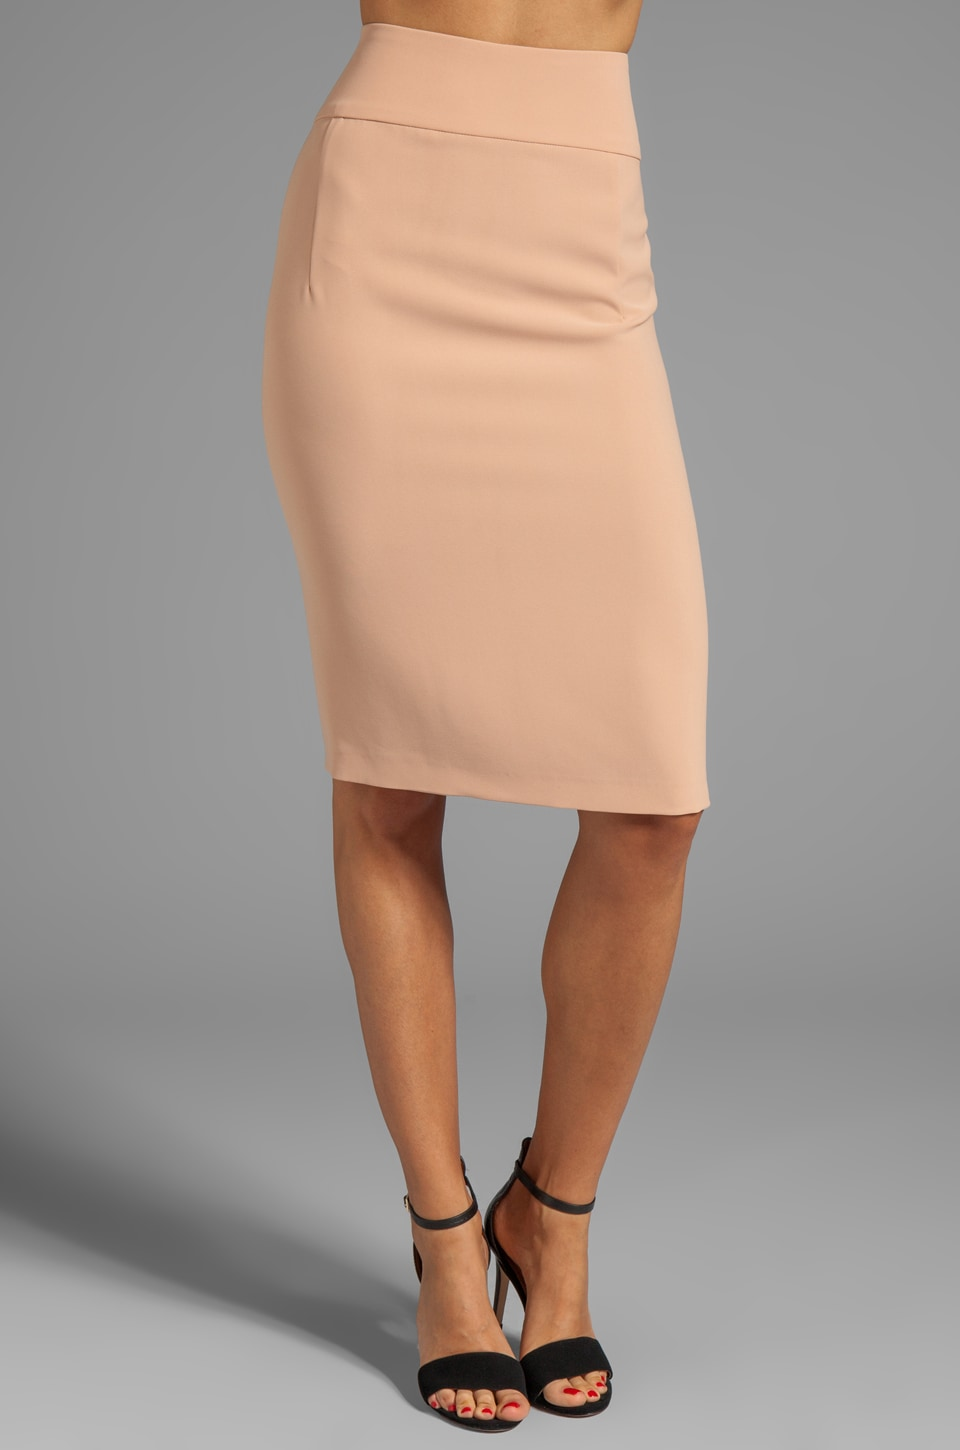 See By Chloe Pencil Skirt in Powder Pink